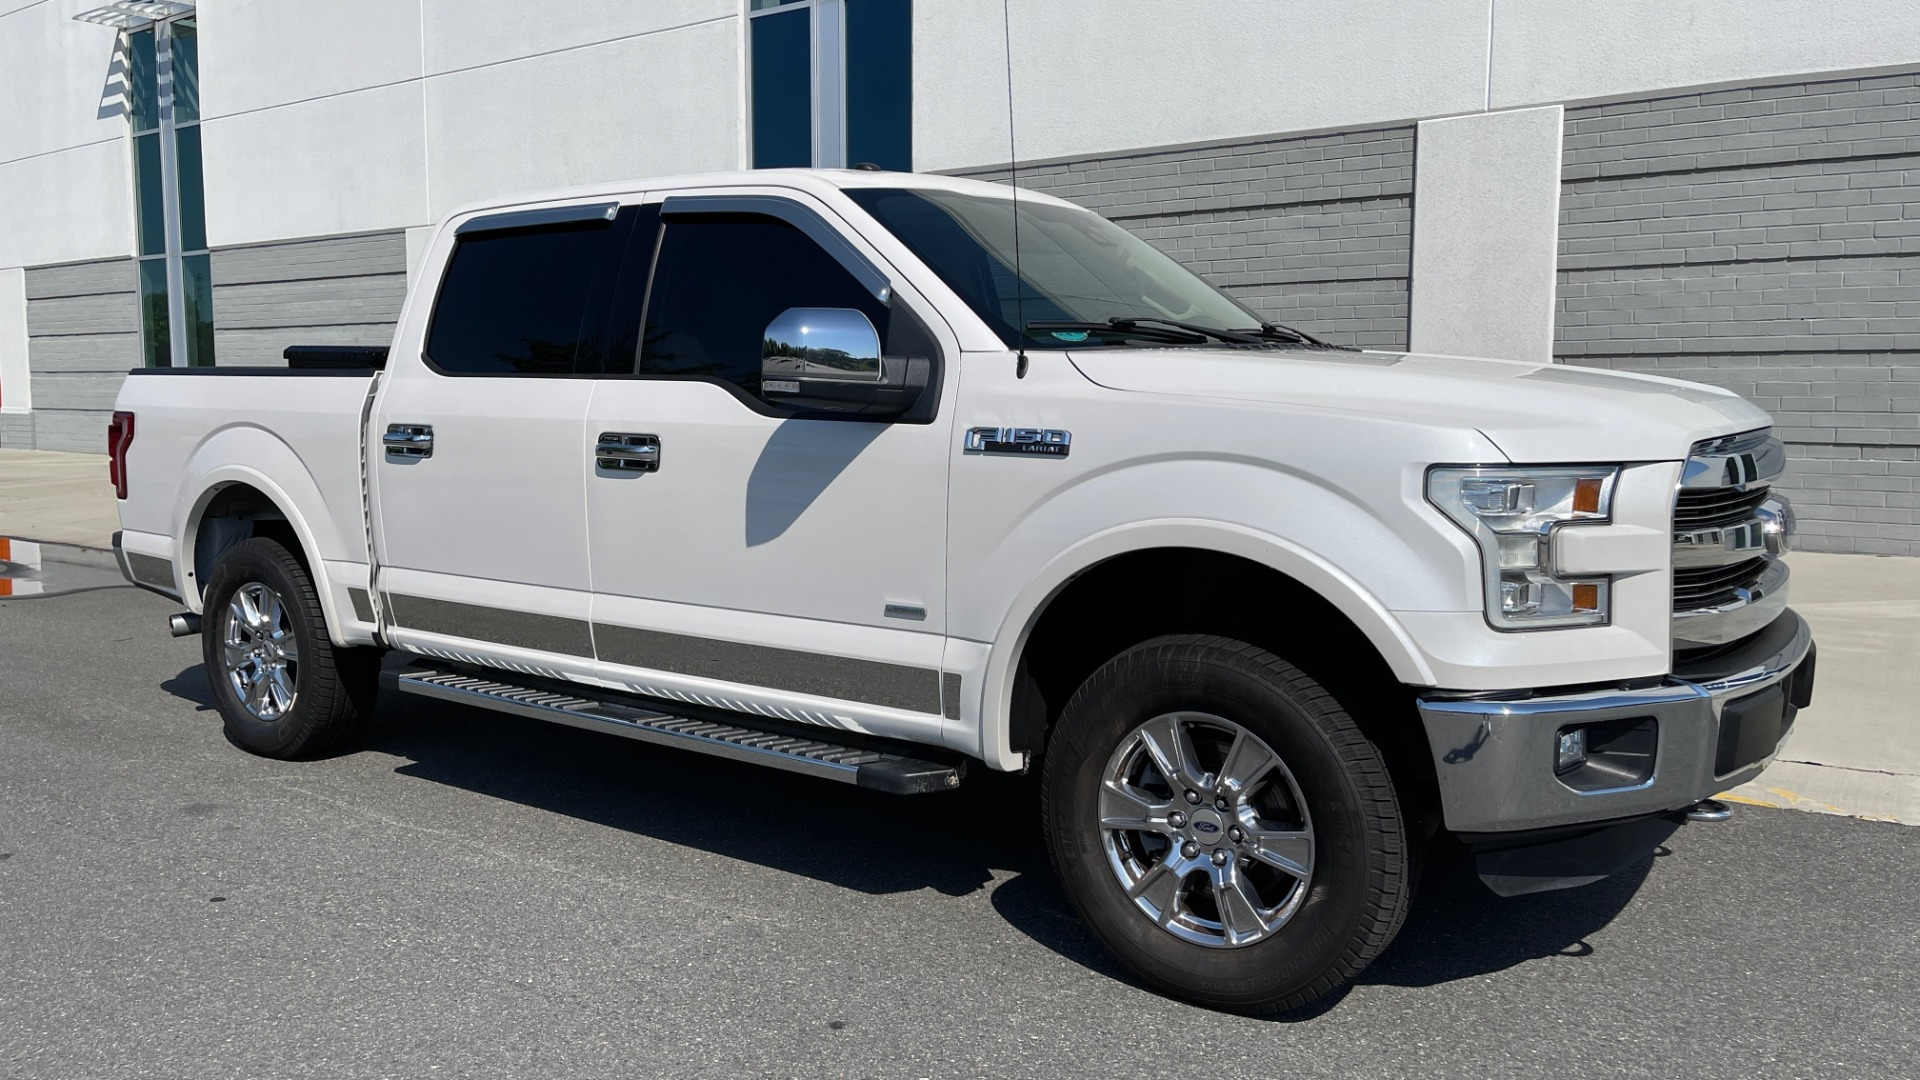 Used 2016 Ford F-150 LARIAT 4X4 / 3.5L V6 / 6-SPD AUTO / BLIS / SONY / NAV / REARVIEW for sale $37,500 at Formula Imports in Charlotte NC 28227 6